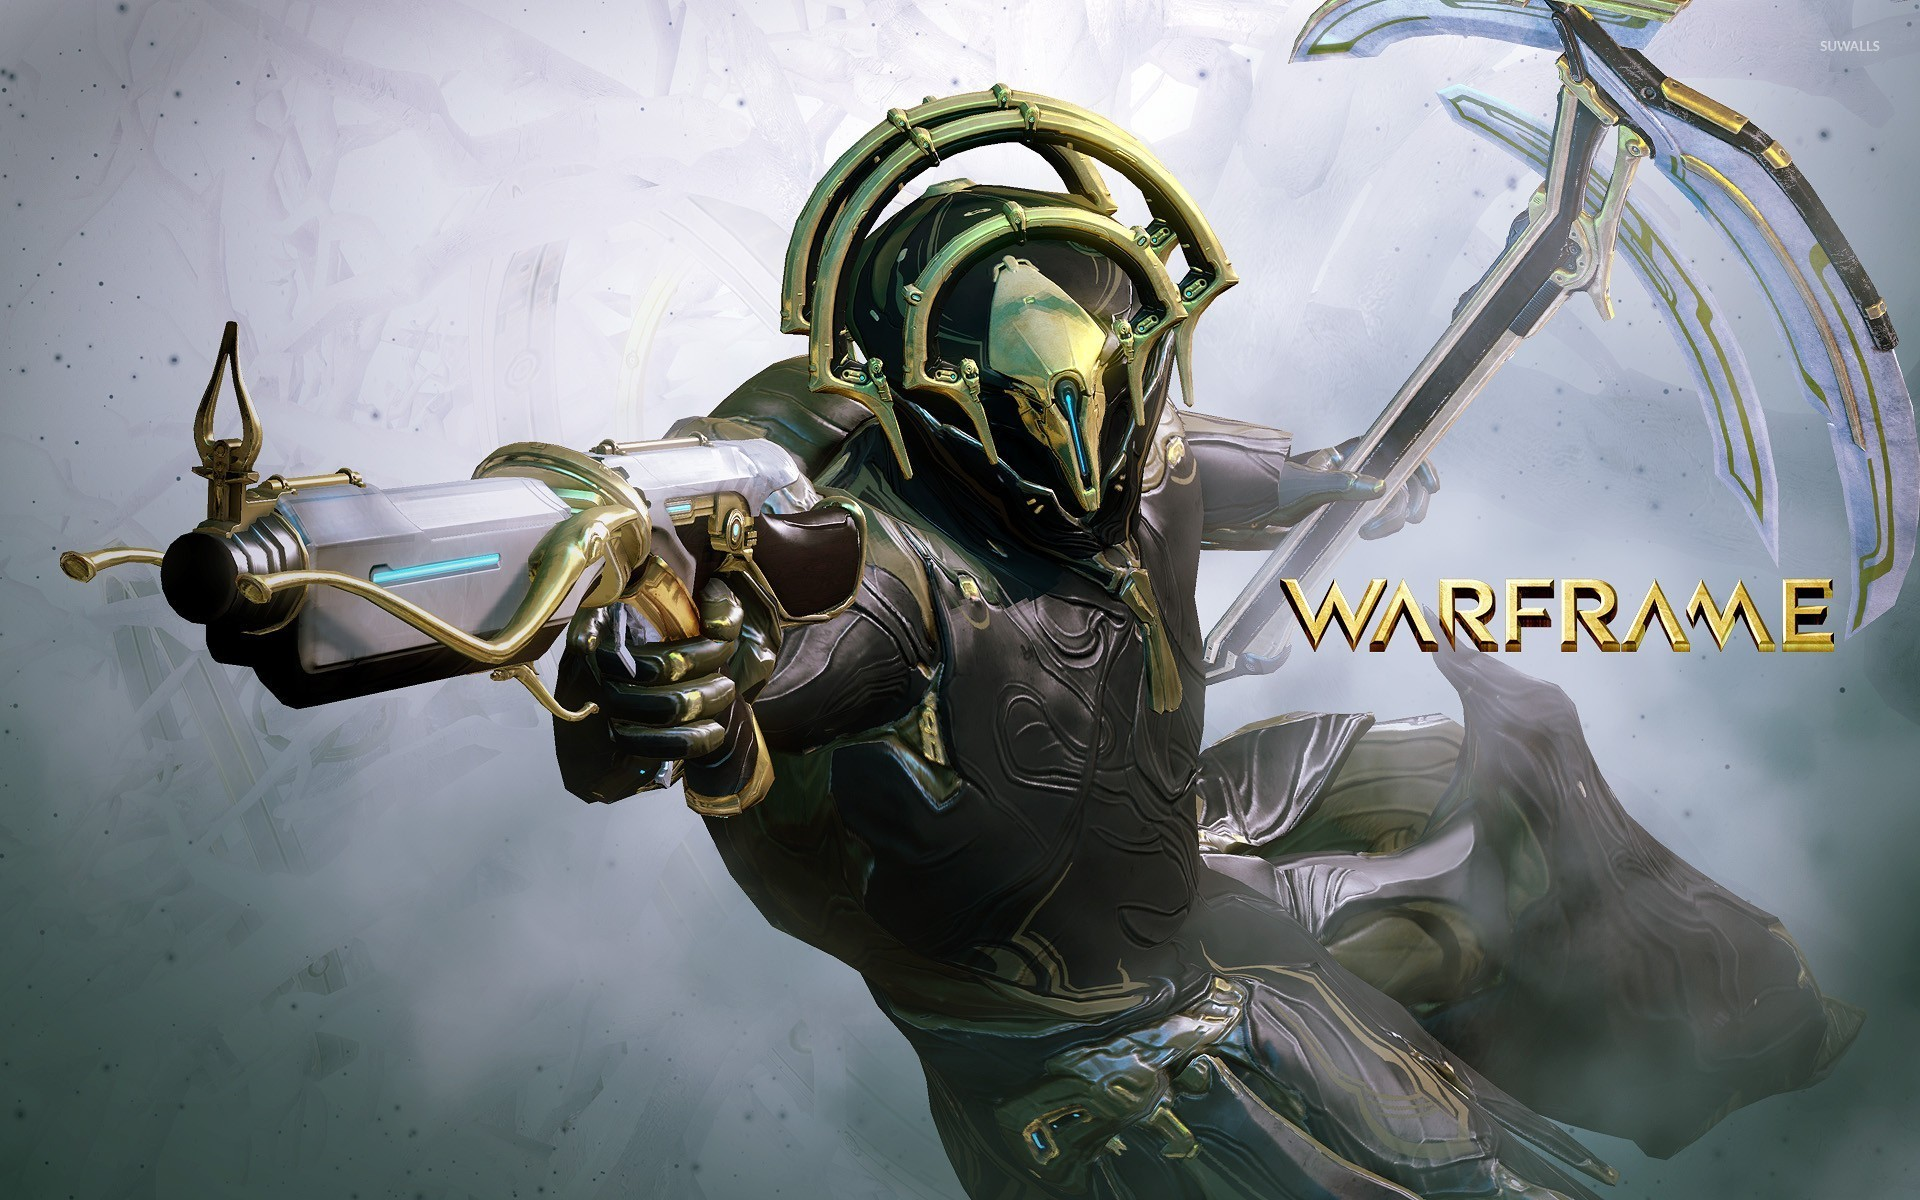 Warframe 2 Wallpaper